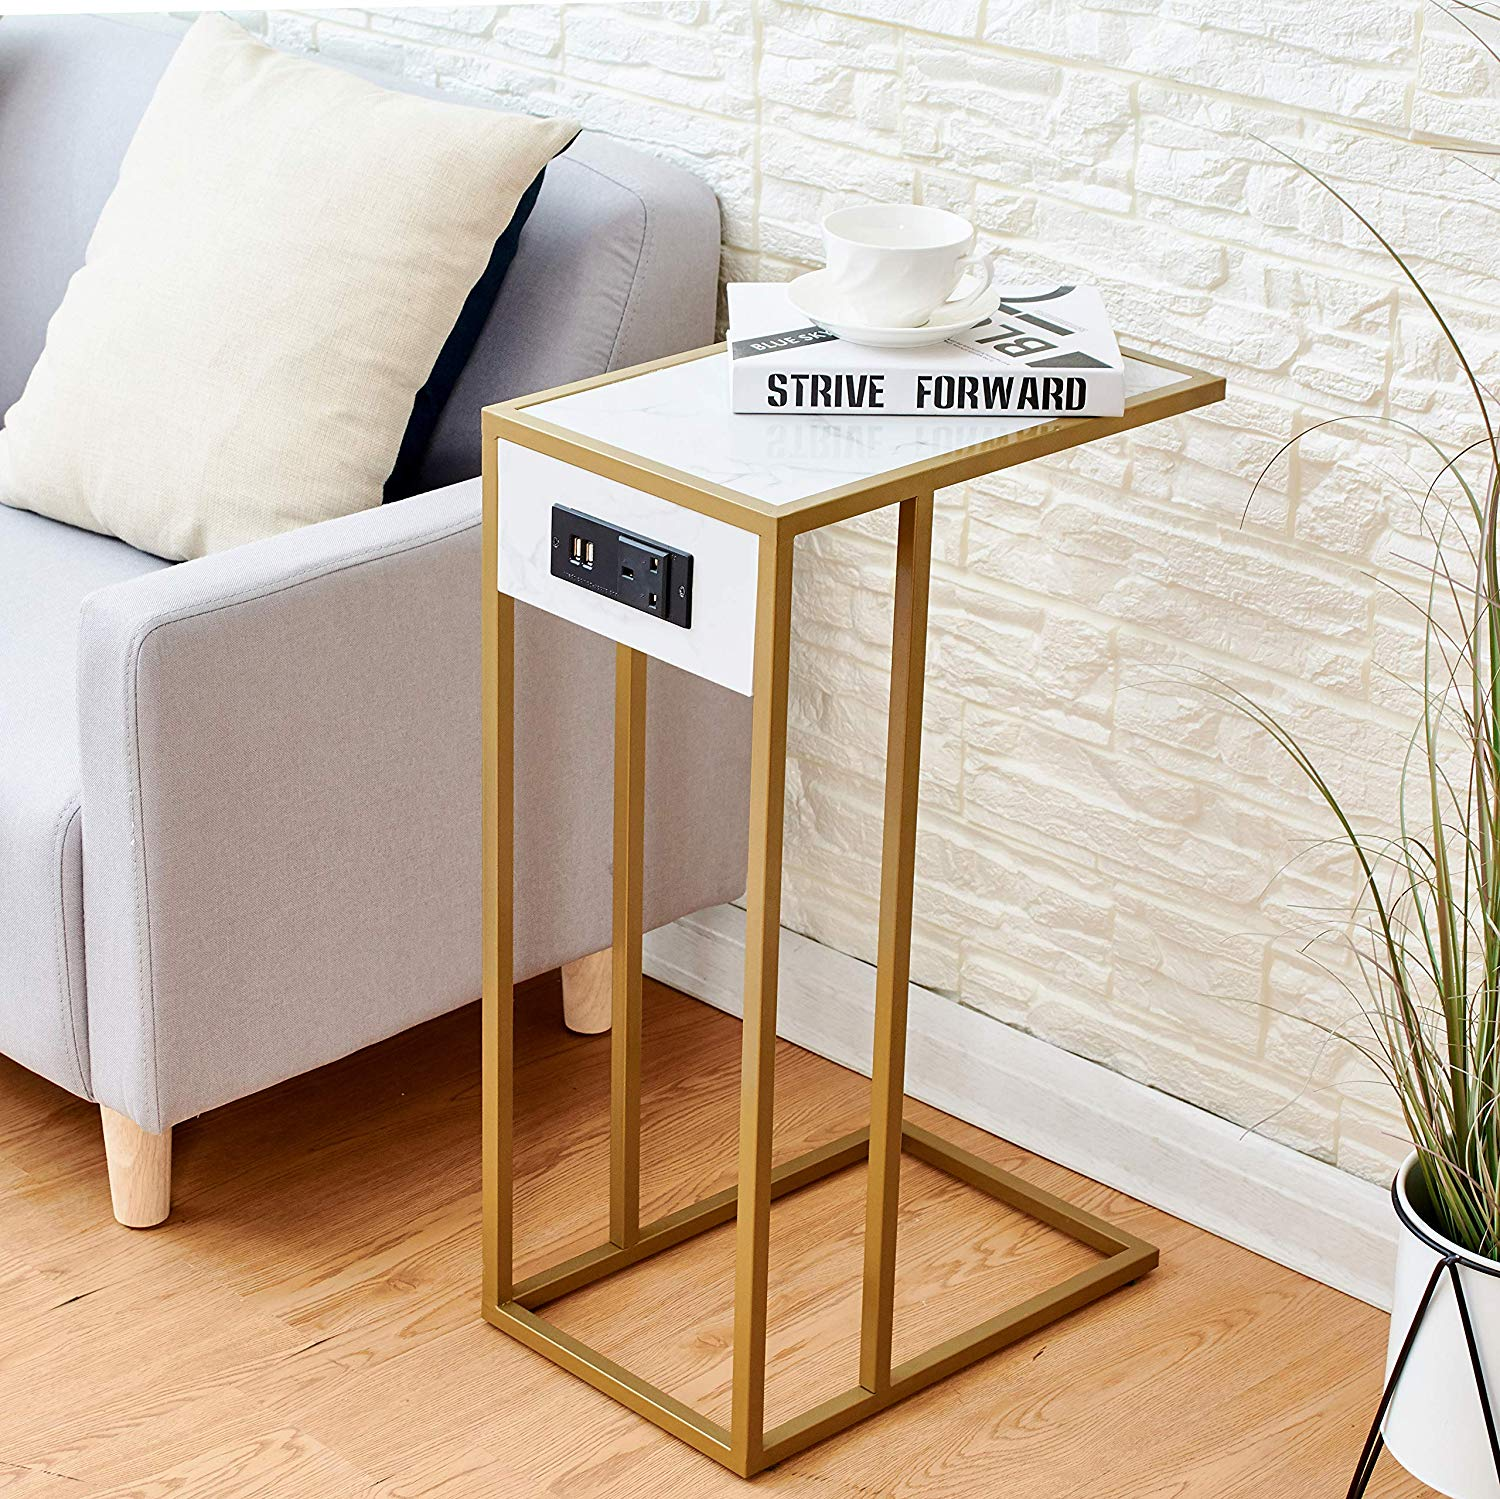 Cherry Tree Furniture Anton Living Room Side Table Sofa Table End Table W Usb Ports Power Outlet White Marble Effect Golden Frame Shop Designer Home Furnishings